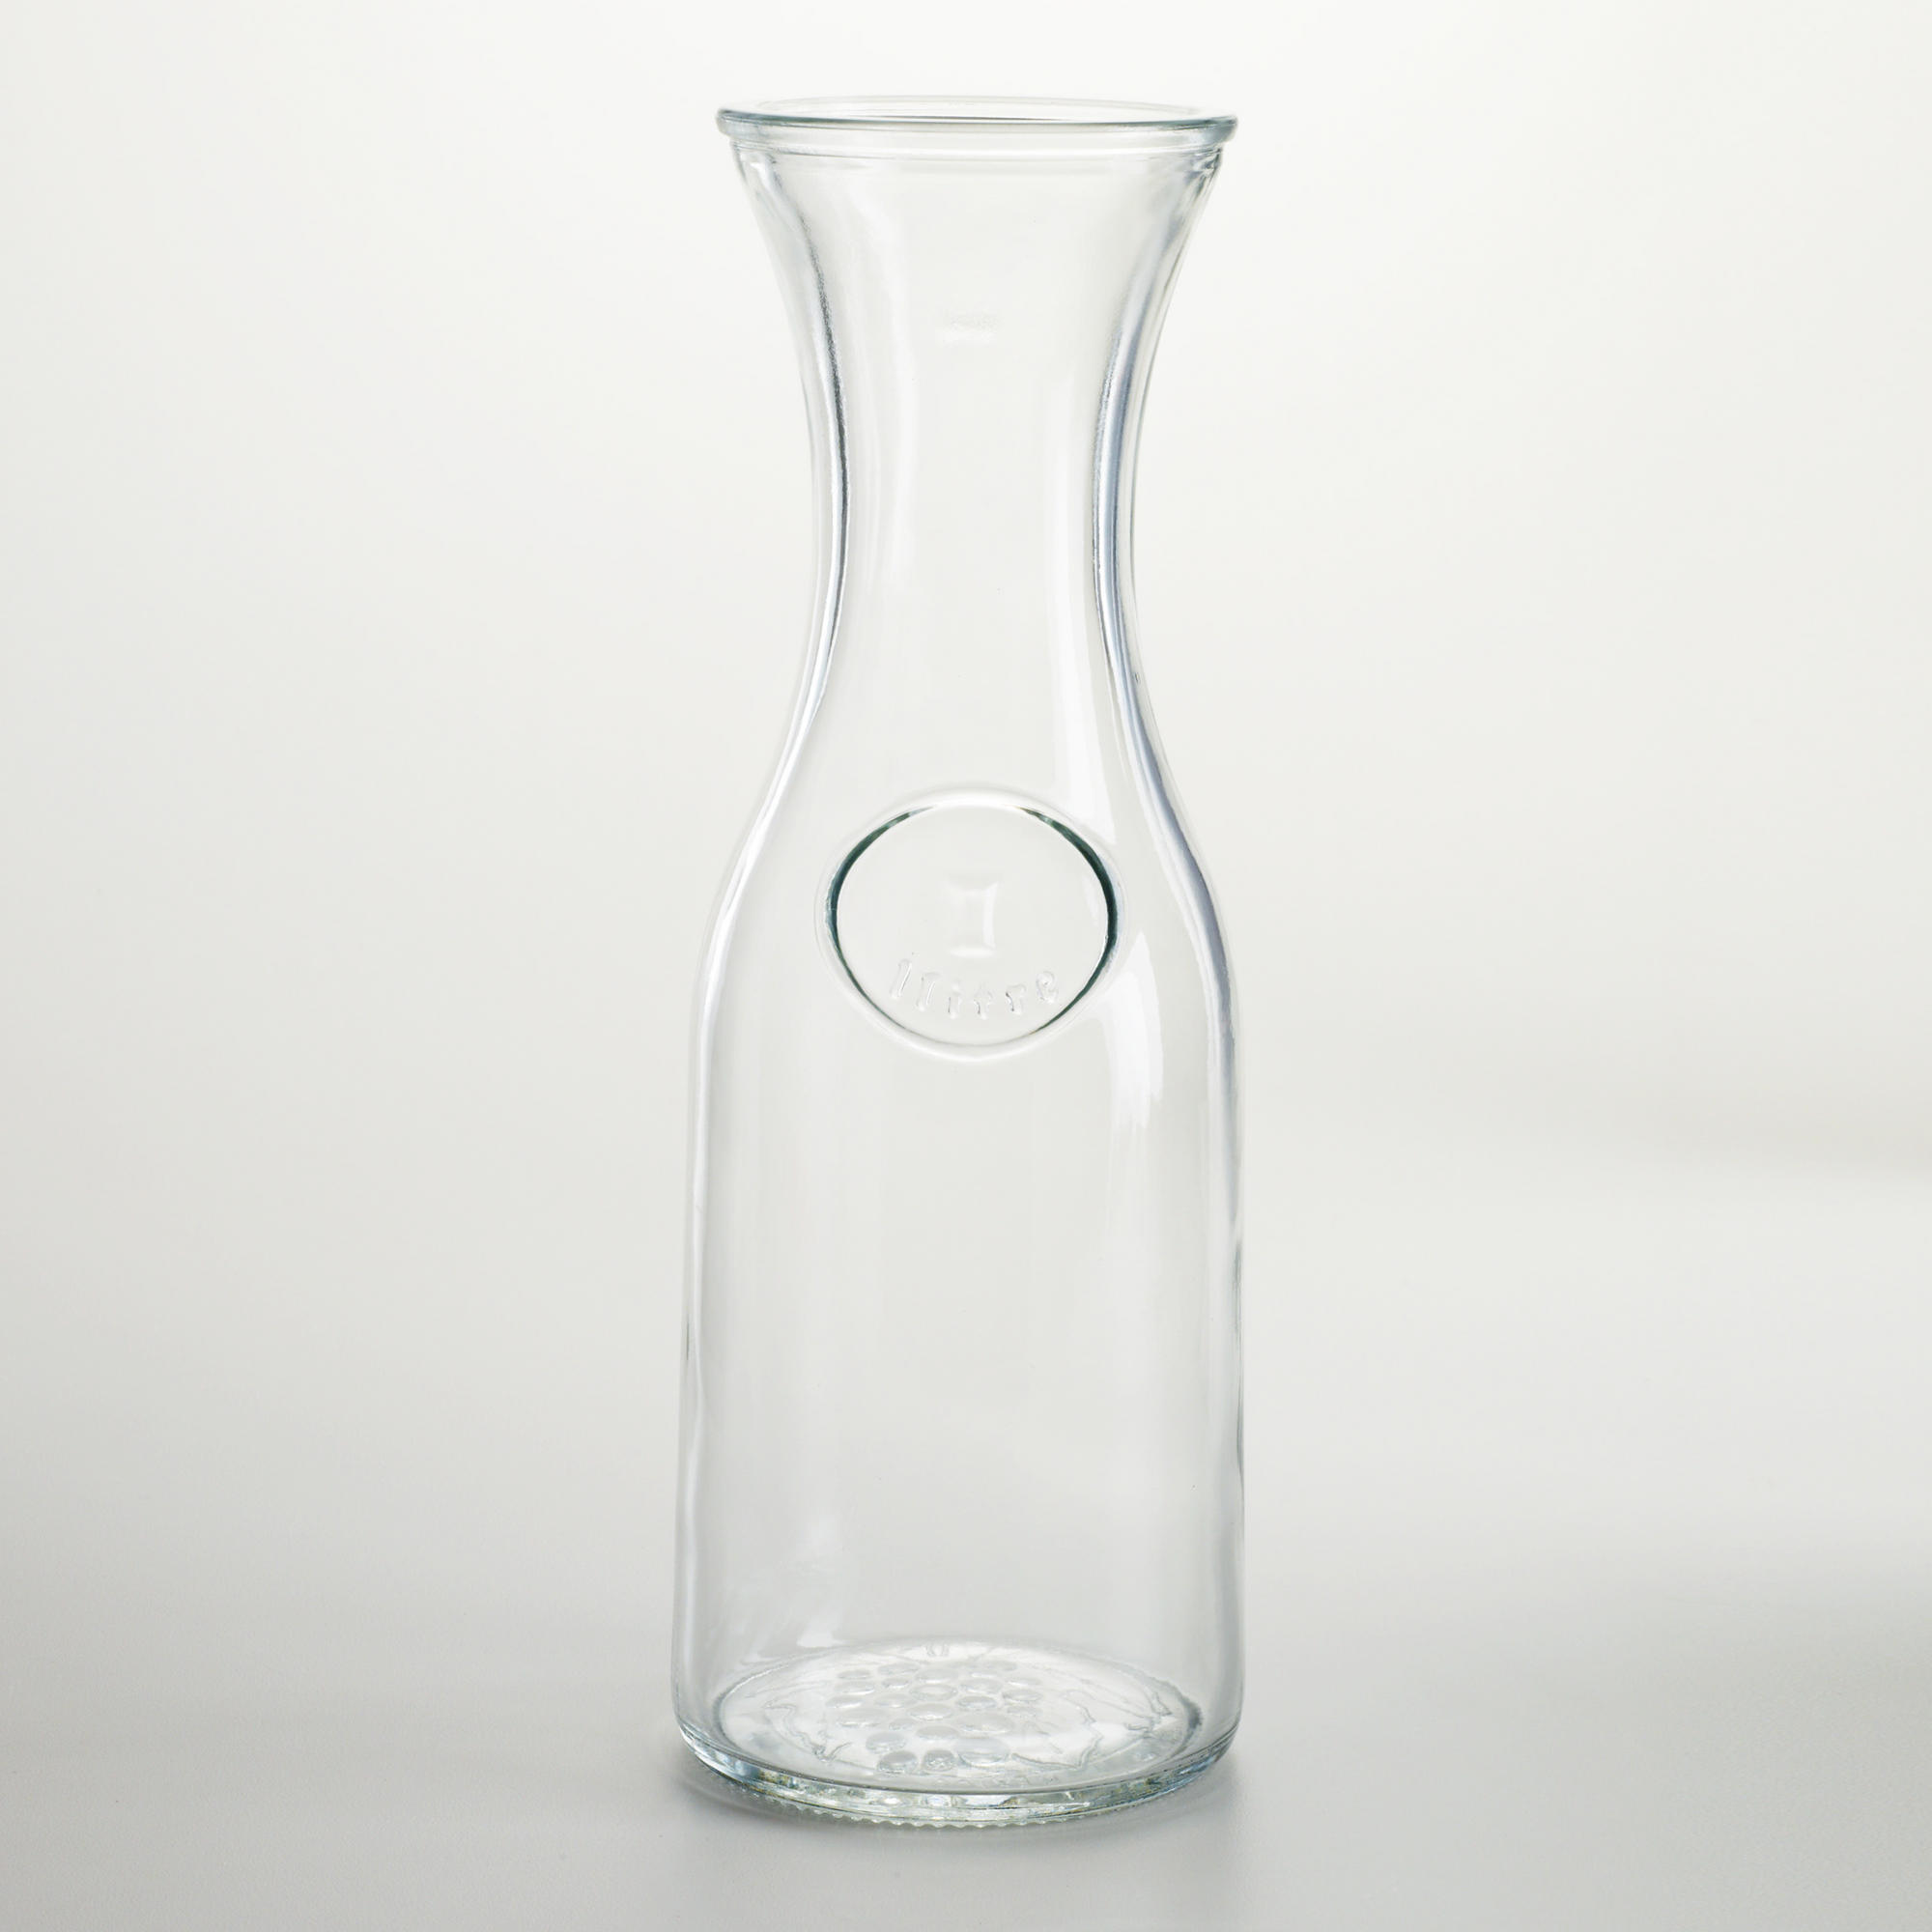 IKEA - IKEA +, Carafe with stopper, Also suitable for hot goodforexbinar.cf carafe with a practical stopper, ideal for storing in the fridge door.